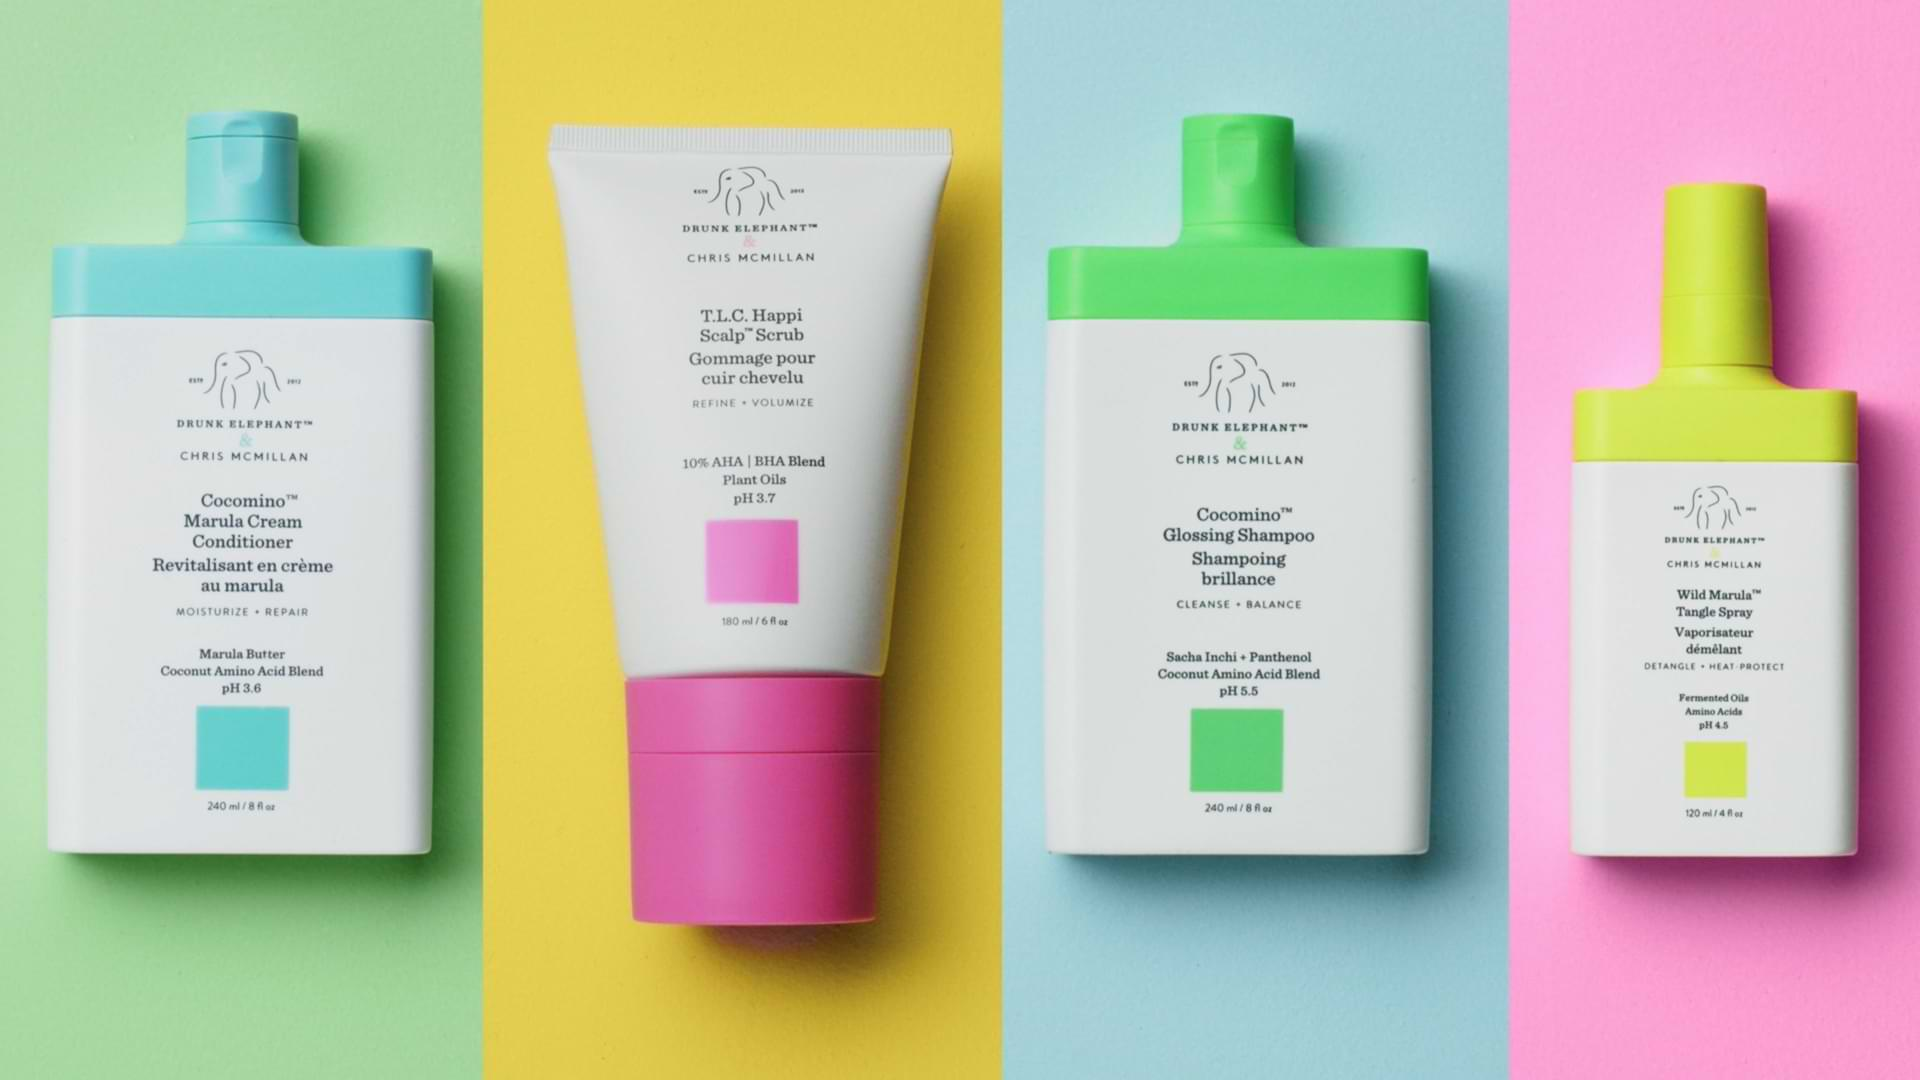 video introducing the new Drunk Elephant hair care line